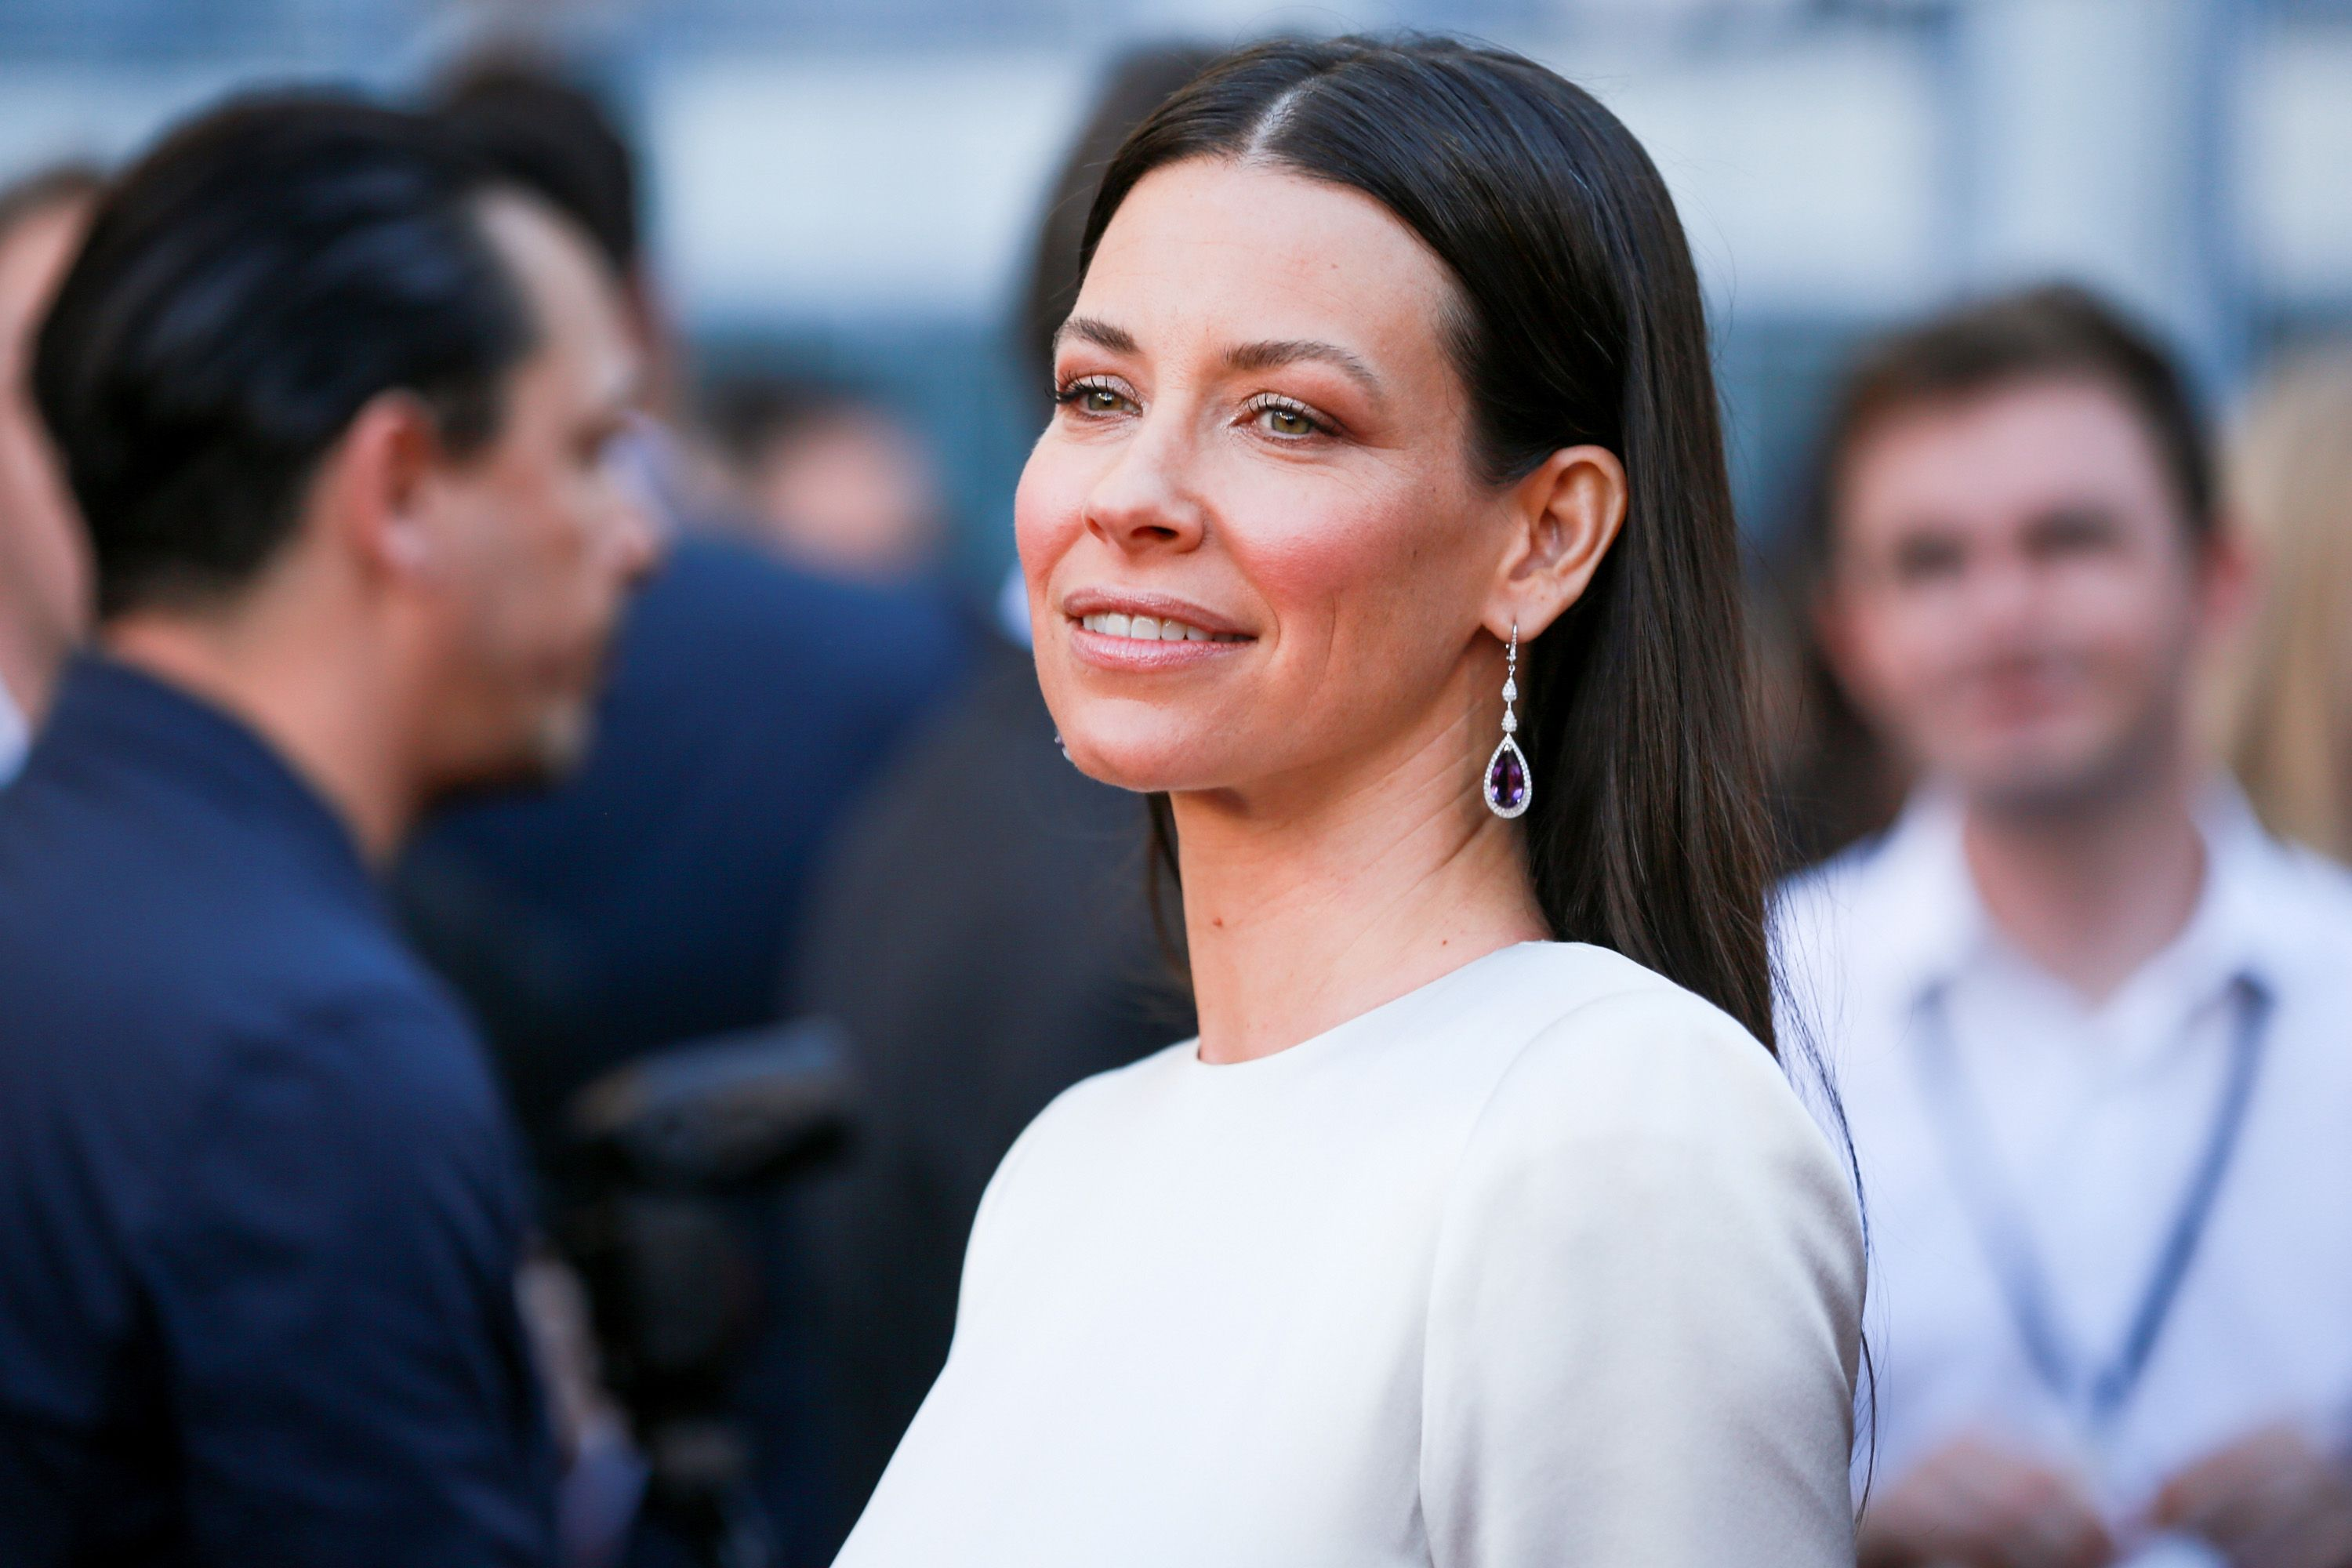 Evangeline Lilly at an event